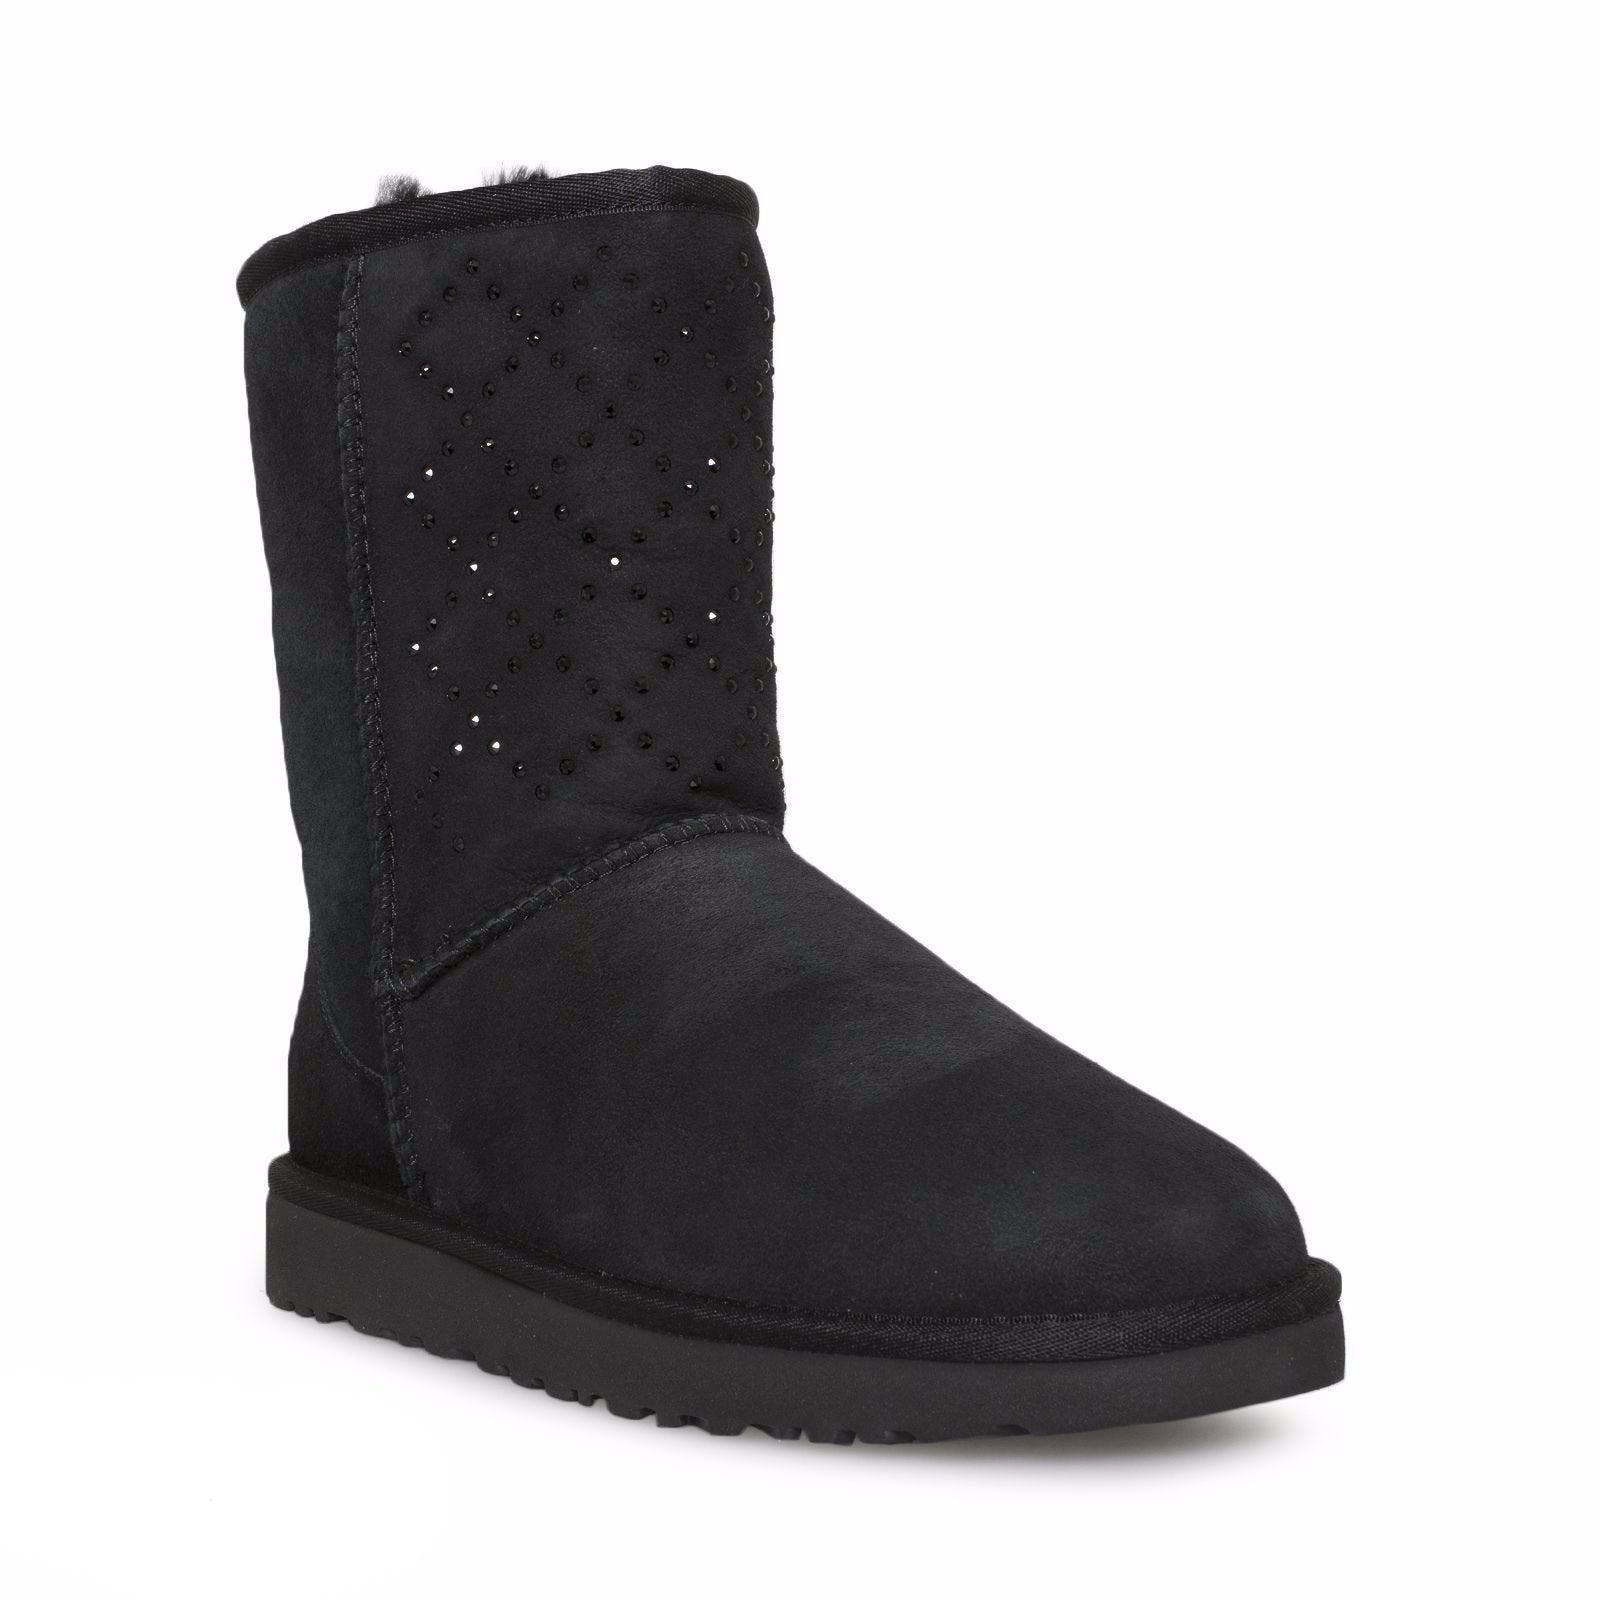 UGG Classic Short Crystal Diamond Black Boots